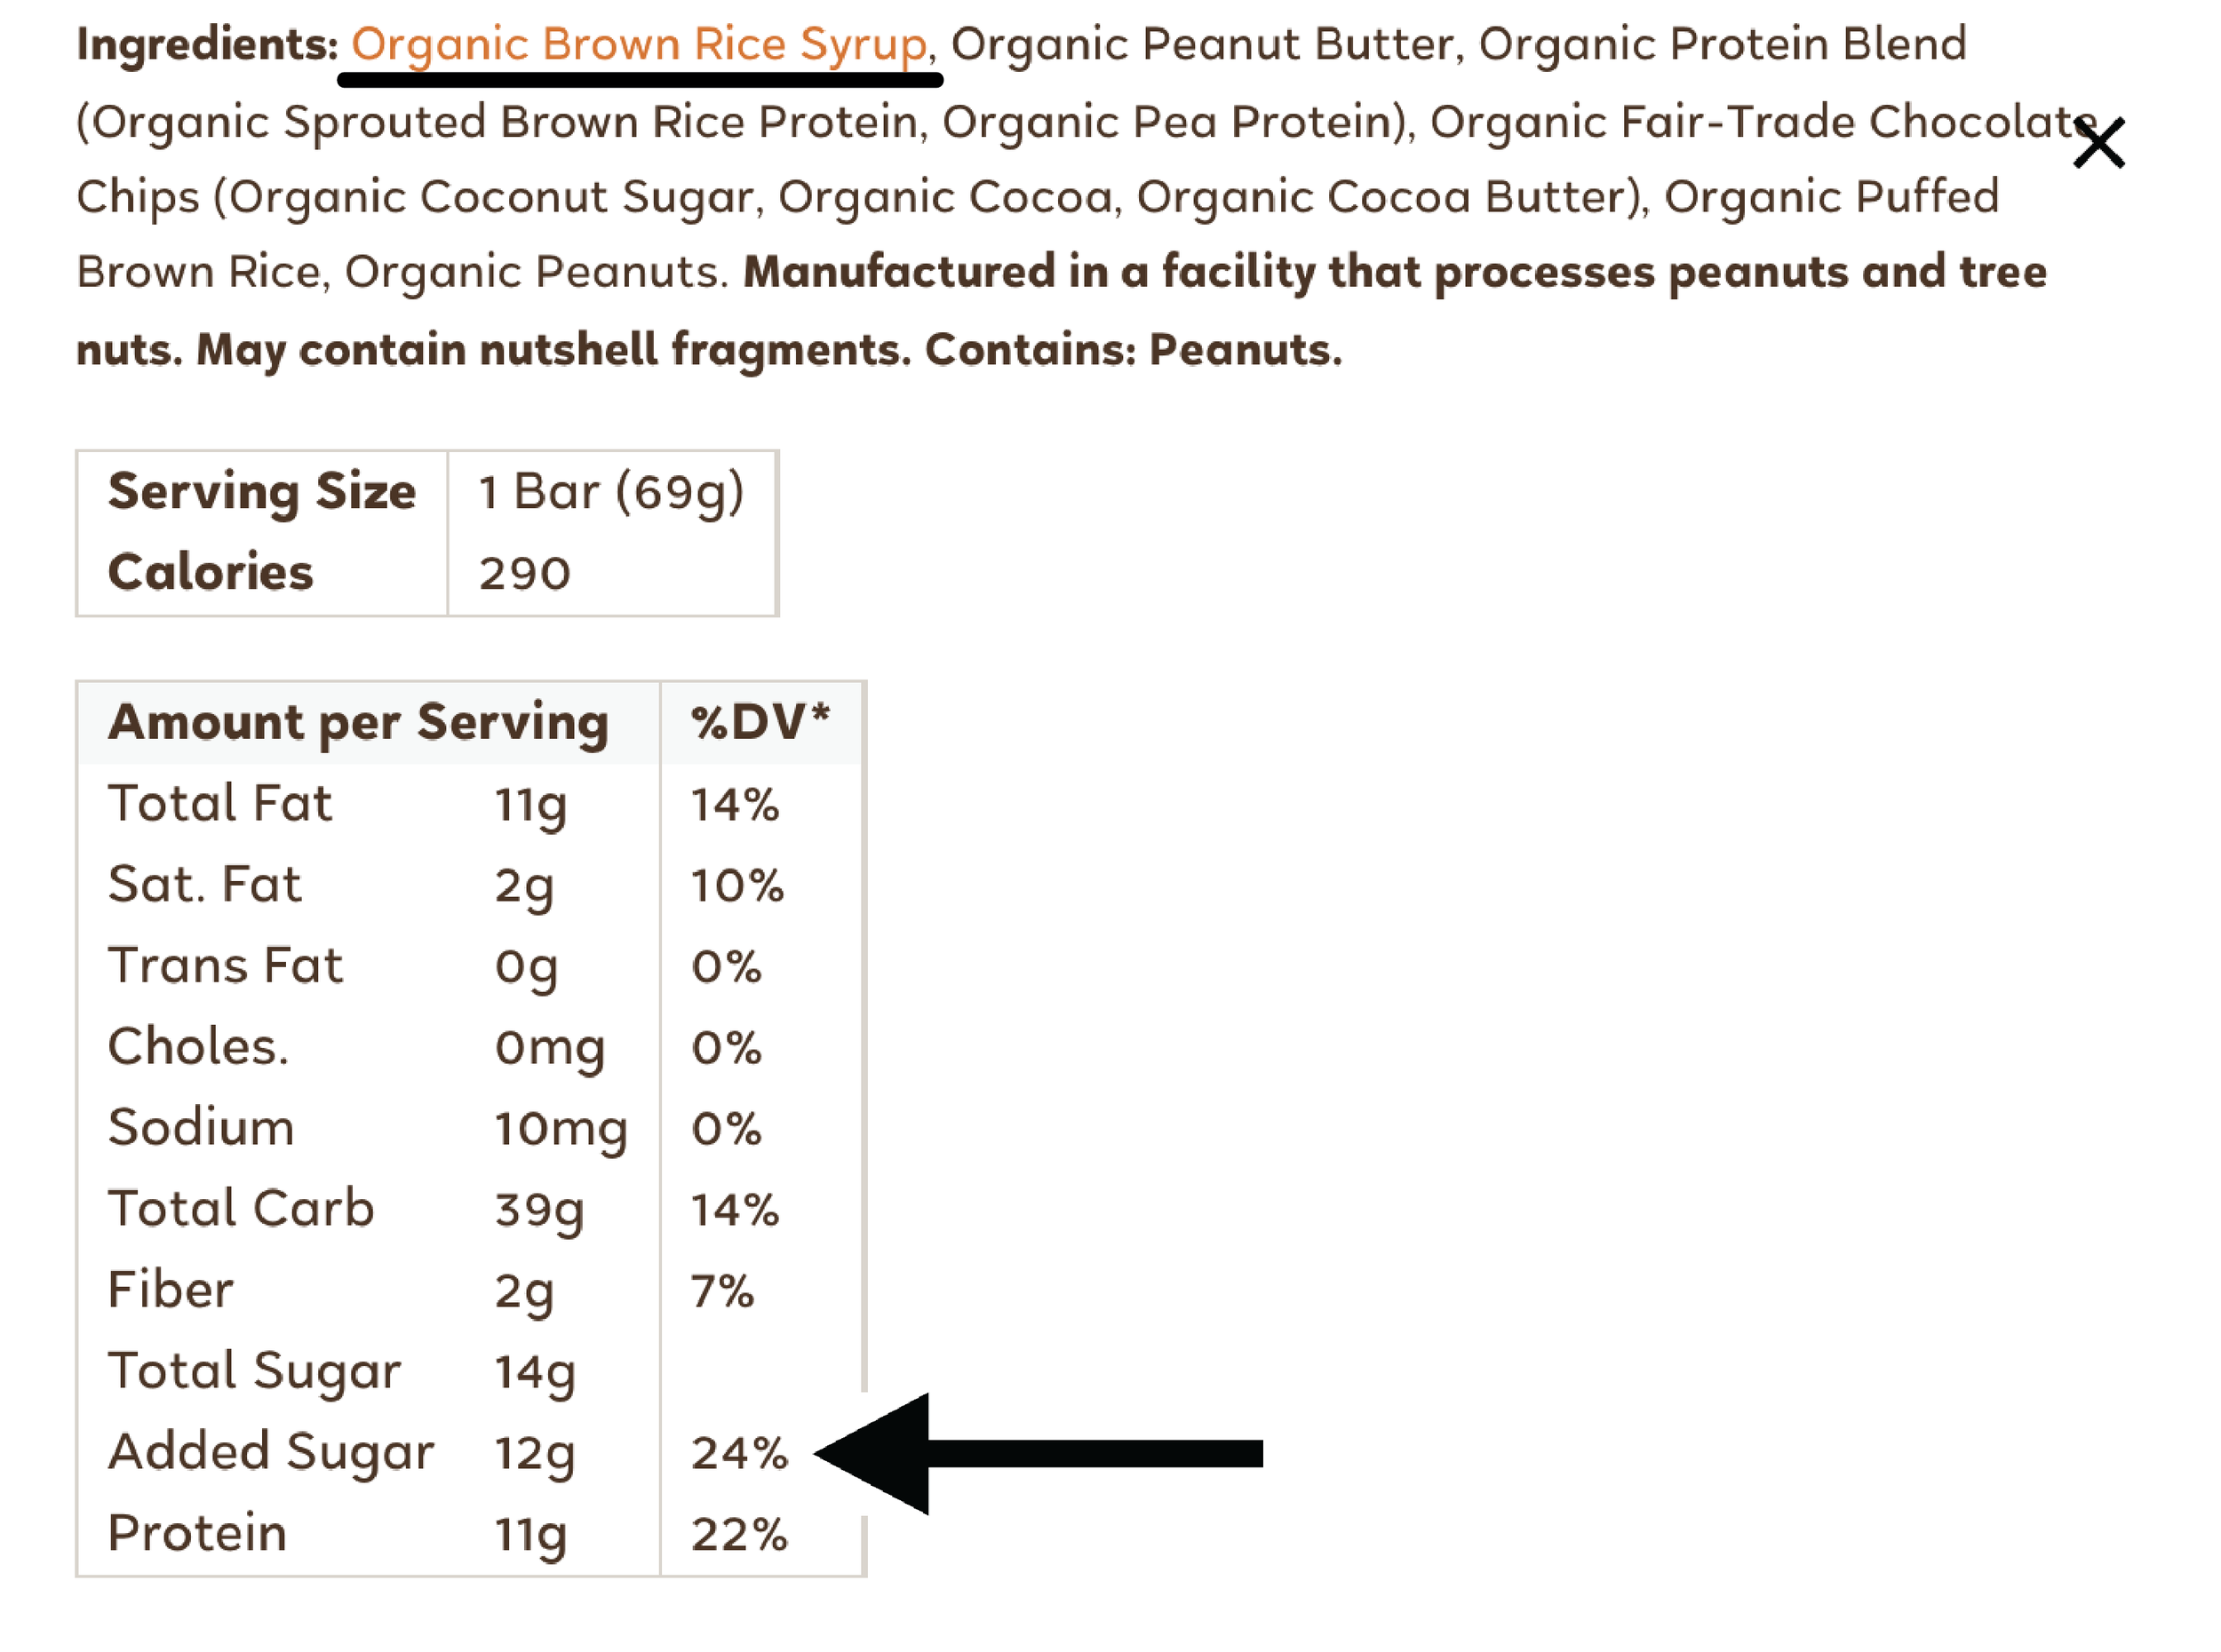 Not every nutrition label will tell you how many grams of added sugar are inside (here, 12gm is equivalent to 1 tbsp or 3 tsp). However, nutrition labeling requirements are now requiring brands to do this. It just takes some time for everyone to make their labeling adjustments! When it comes to sugars that are naturally found in whole foods like fruit, vegetables, and beans – don't worry so much about that. It's the added sugars we want to be cautious about here.     So what happens when you remove added sugars from your diet.   We know that sugar is an addiction, so you can expect symptoms like headache, sugar cravings, and irritability in the week or so after removing added sugar. It is normal for certain times of day (afternoon slump, anyone?!) to be more difficult when it comes to cravings, but the key is to push through. After a week or so,  those cravings should get better .  As a dietitian, I recommend making your meals and snacks as balanced as possible to help fight feelings of hunger and fatigue, which will make you crave more sugar. Include protein, healthy fats and fiber into meals as these three nutrients keep us feeling satisfied and keep our blood sugar balanced (which is great for inflammation, weight, energy and overall mood). In my opinion, it is totally fine to include carbohydrates like sweet potatoes and fruit but blood sugar will be more balanced by making the non-starchy veggies (ie spinach, broccoli, roasted carrots, arugula) the star of the plate and incorporating a protein as well, whether that's eggs, fish, chicken or tofu. Carbs can be part of the plate, but for health, we generally want to make them more of a side kick.  If you're used to adding honey or sugar to your coffee or tea in the am, you may be tempted to swap to artificial sweeteners during this time. I say - try to skip that. The research seems to show that these artificial sweeteners may actually make us crave more sweet and can negatively impact our gut health too.